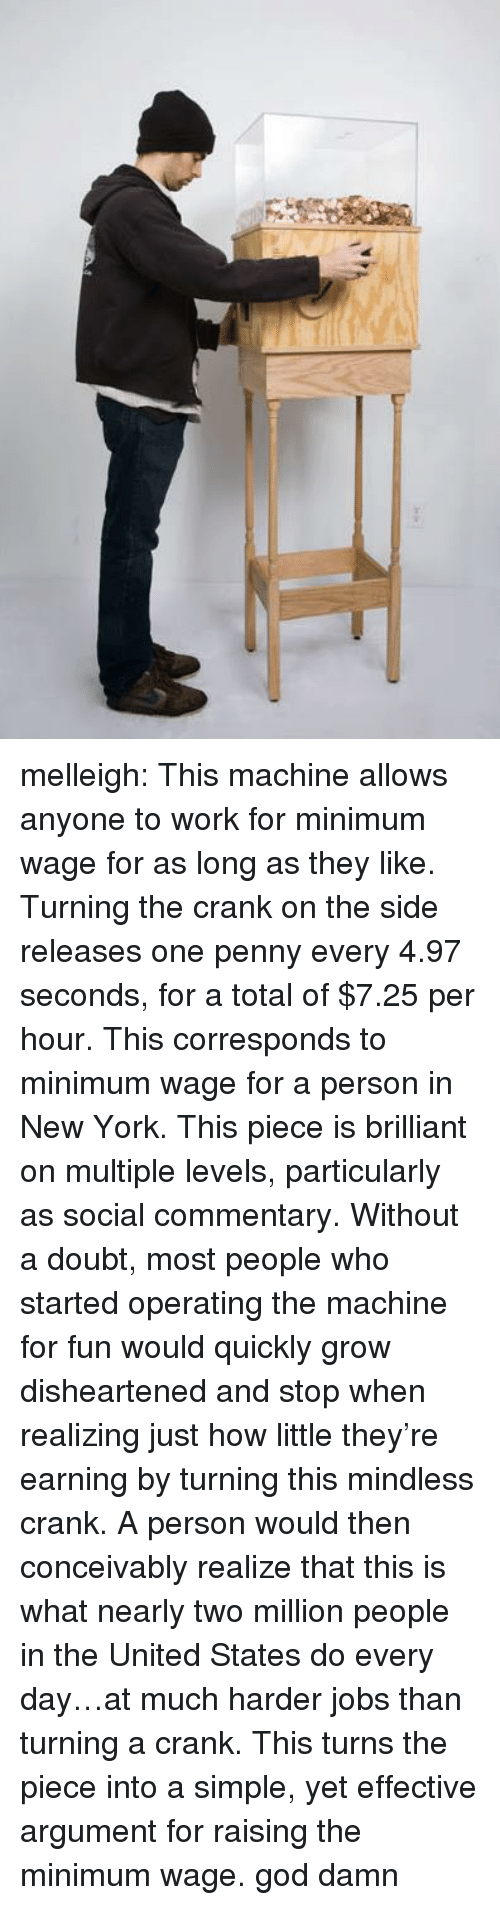 God, New York, and Target: melleigh:   This machine allows anyone to work for minimum wage for as long as they like. Turning the crank on the side releases one penny every 4.97 seconds, for a total of $7.25 per hour. This corresponds to minimum wage for a person in New York. This piece is brilliant on multiple levels, particularly as social commentary. Without a doubt, most people who started operating the machine for fun would quicklygrow disheartened and stop when realizing just how little they're earning by turning this mindless crank. A person would then conceivably realize that this is what nearly two million people in the United States do every day…at much harder jobs than turning a crank. This turns the piece into a simple, yet effective argument for raising the minimum wage.  god damn